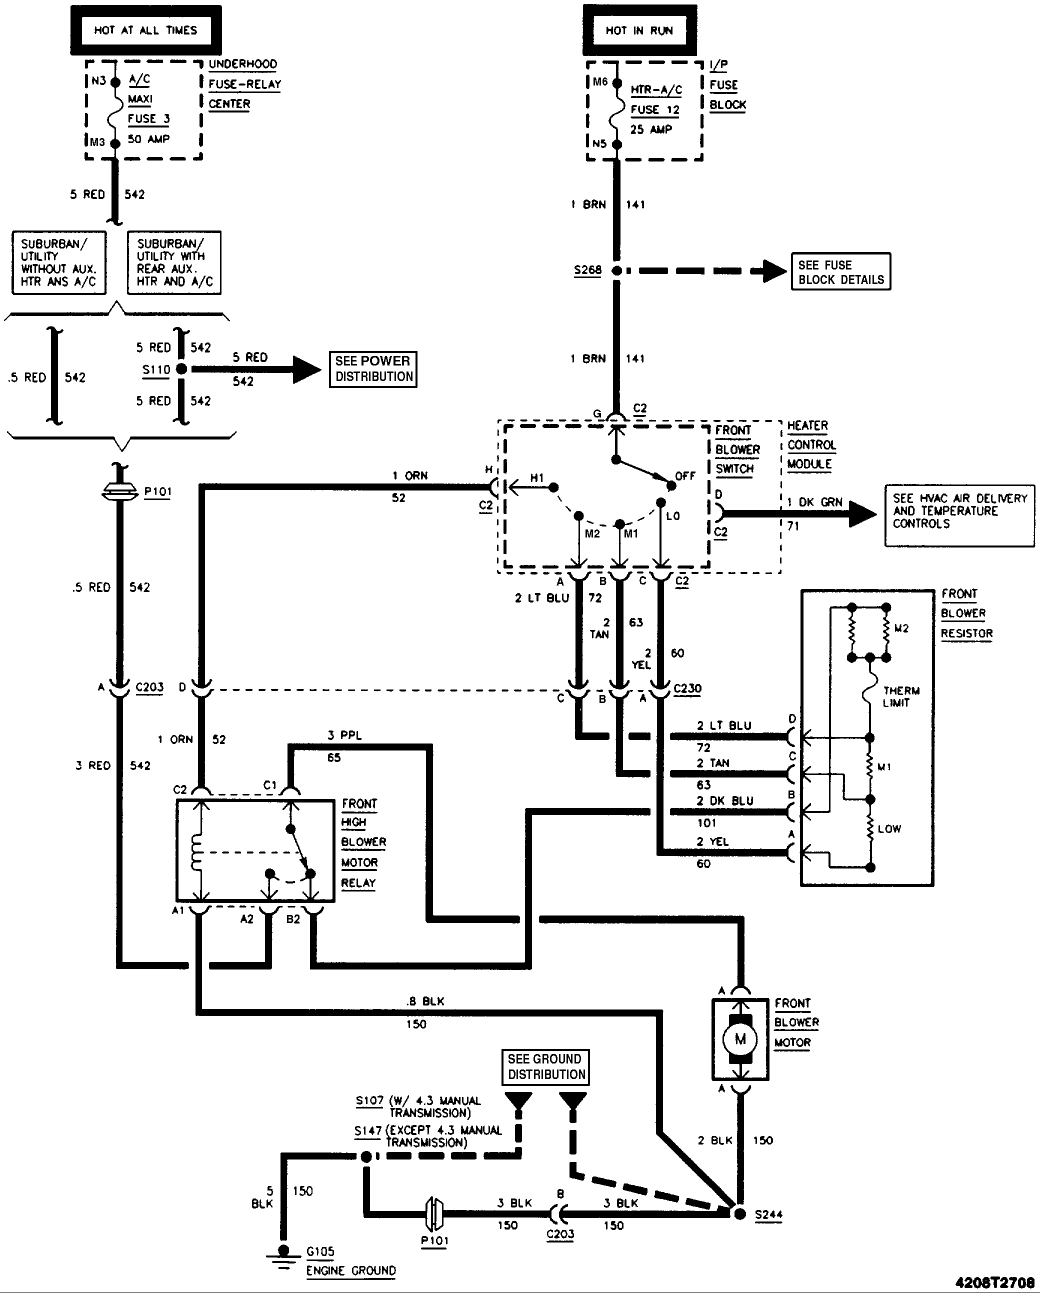 Wiring: My Wiring for My Blower Motor Is Wrong so I Got